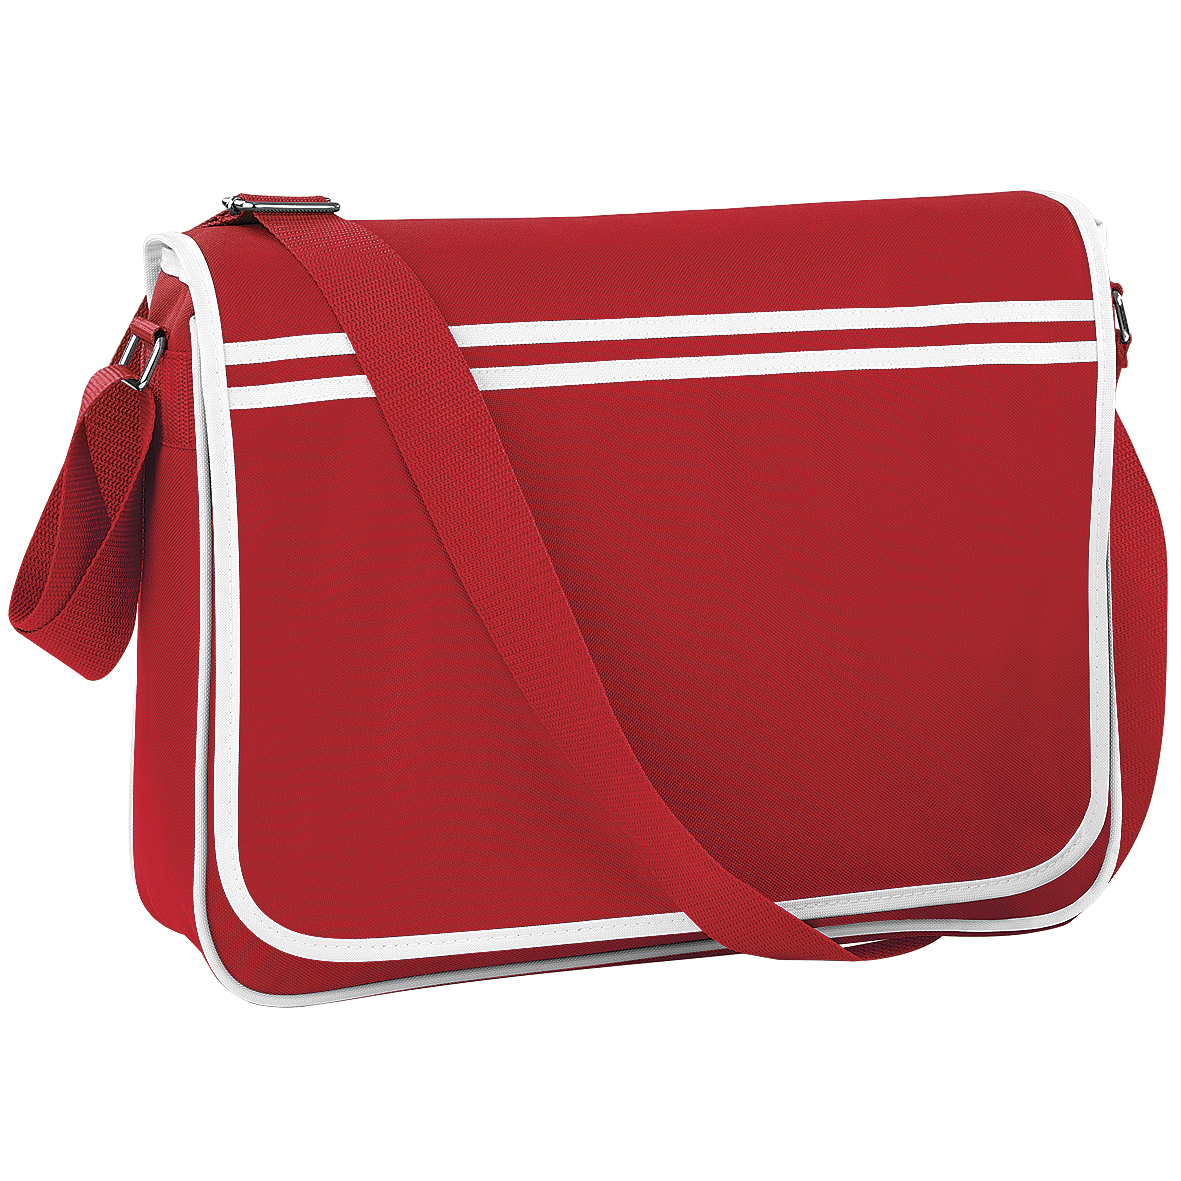 Bagbase Retro Adjustable Messenger Bag (12 Litres) (One Size) (Classic Red/White)